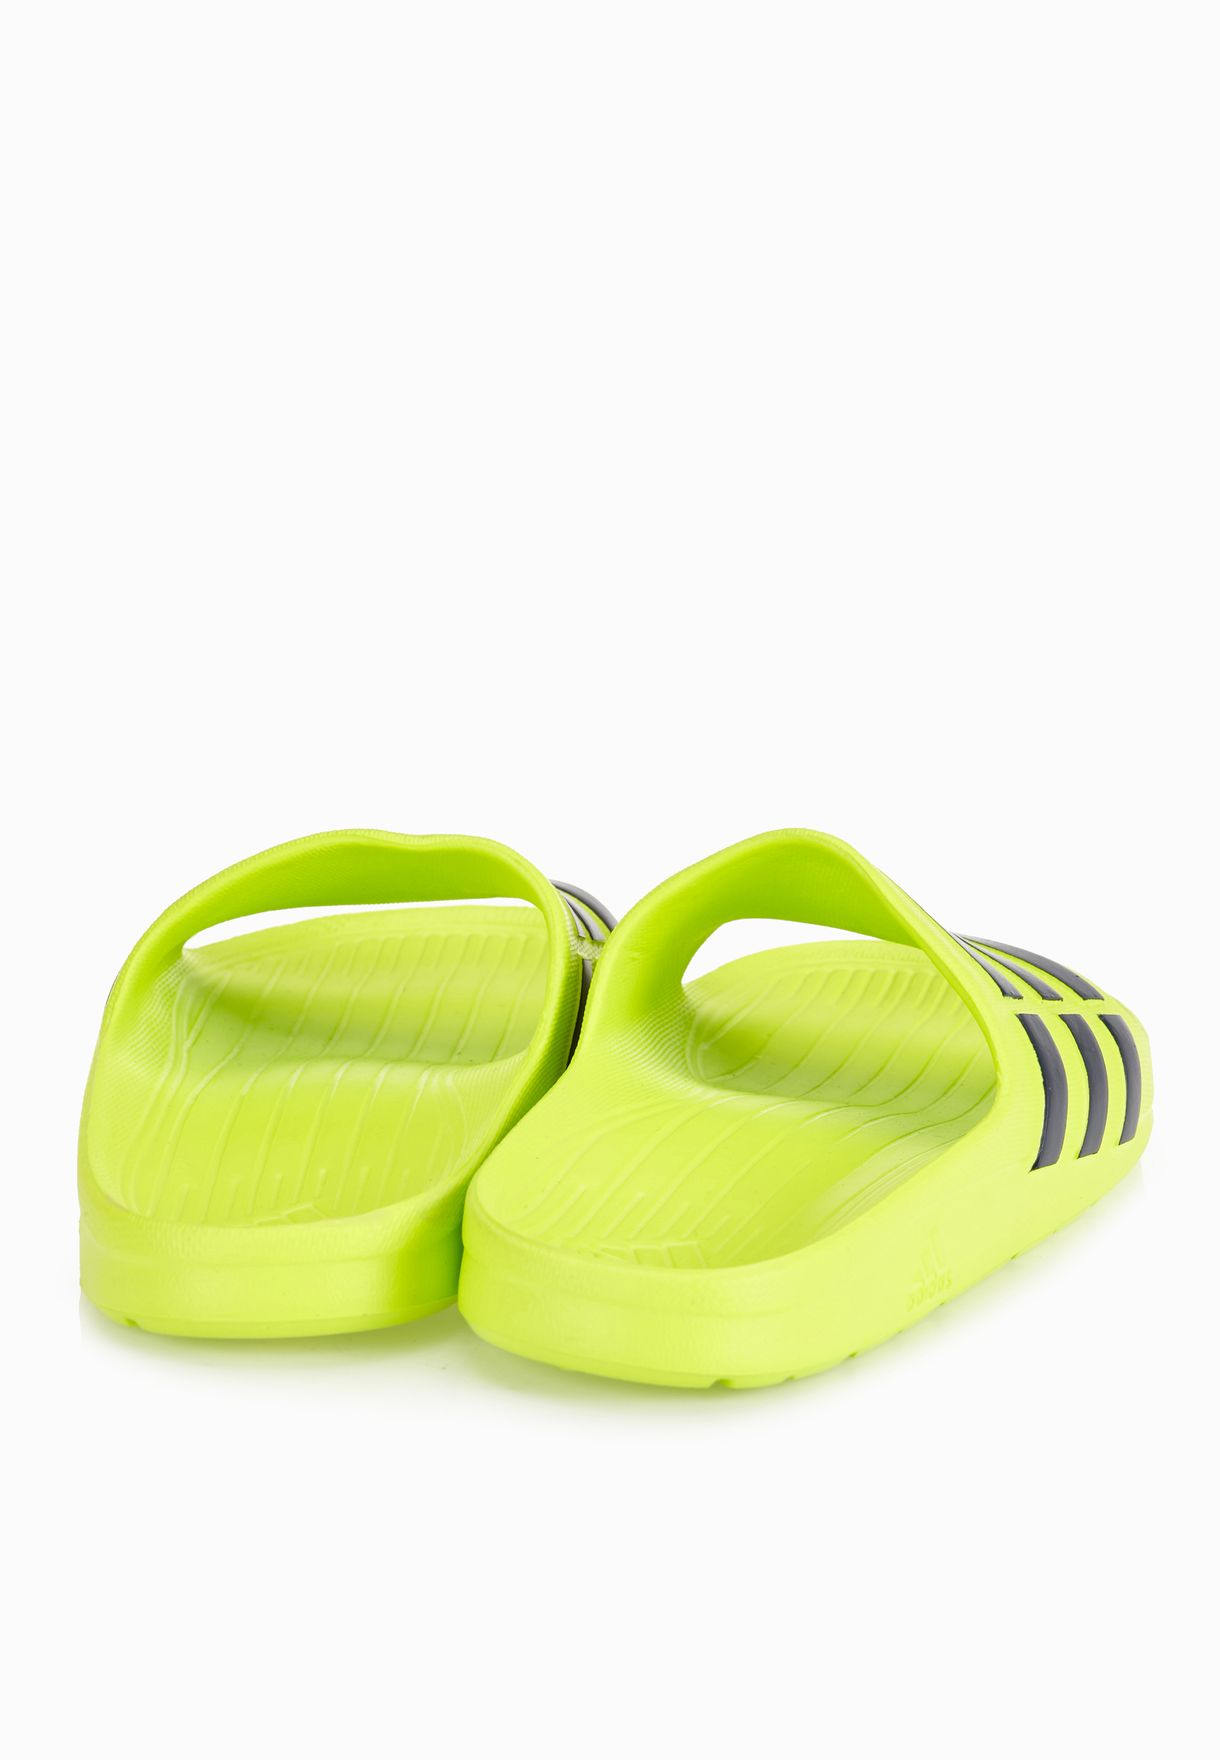 NEW Adidas Mens Duramo Sliders Flip Flops Green//Yellow SIZE FROM 6-12 Limited